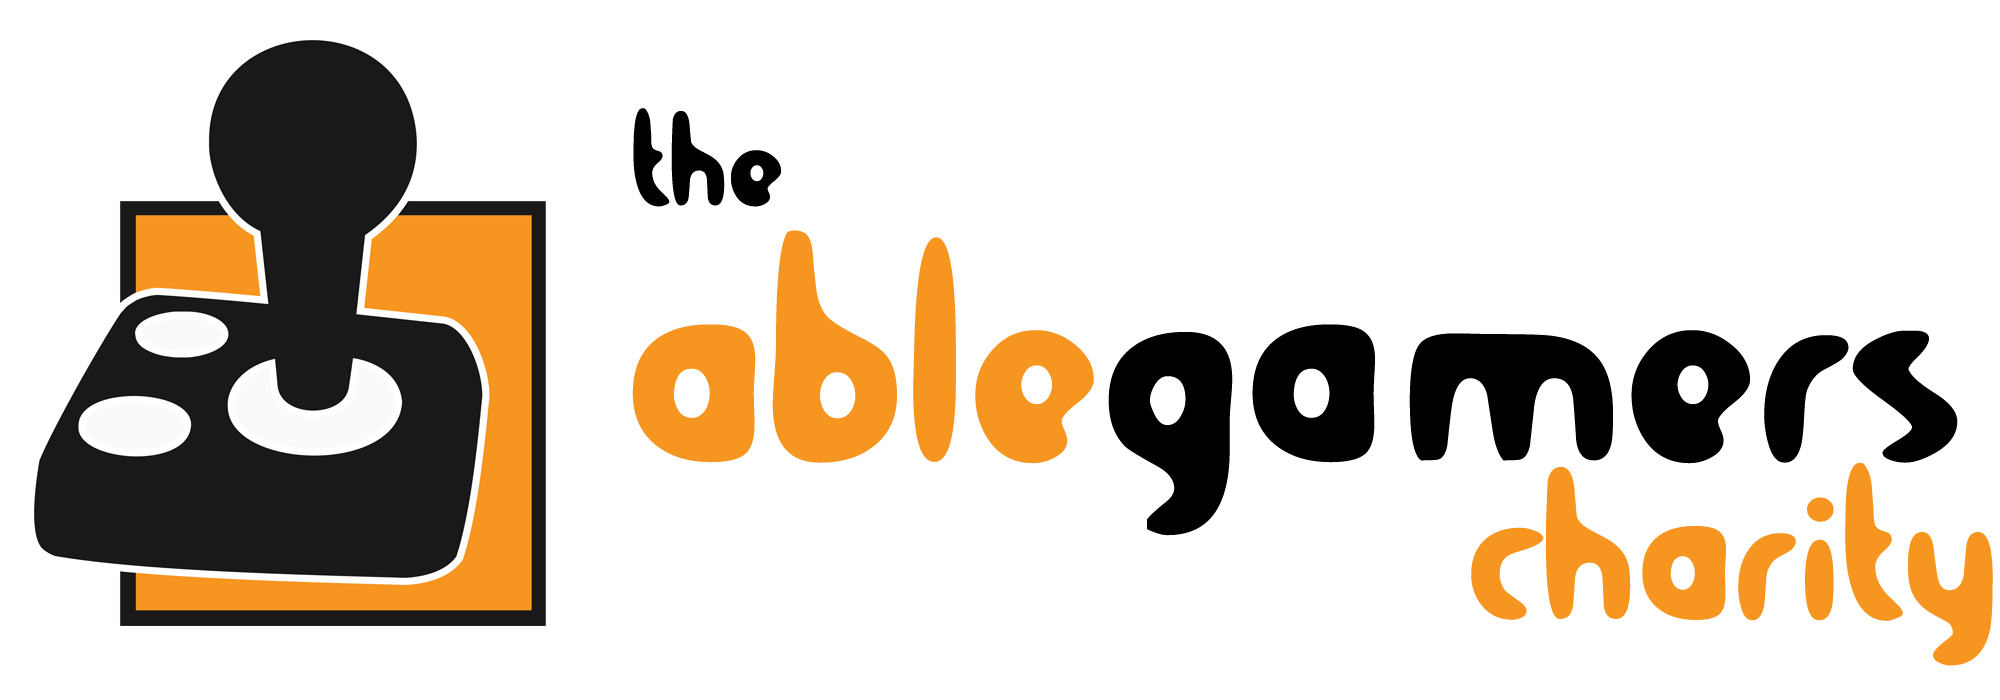 AbleGamers-Total-Logo-HD-Black.png